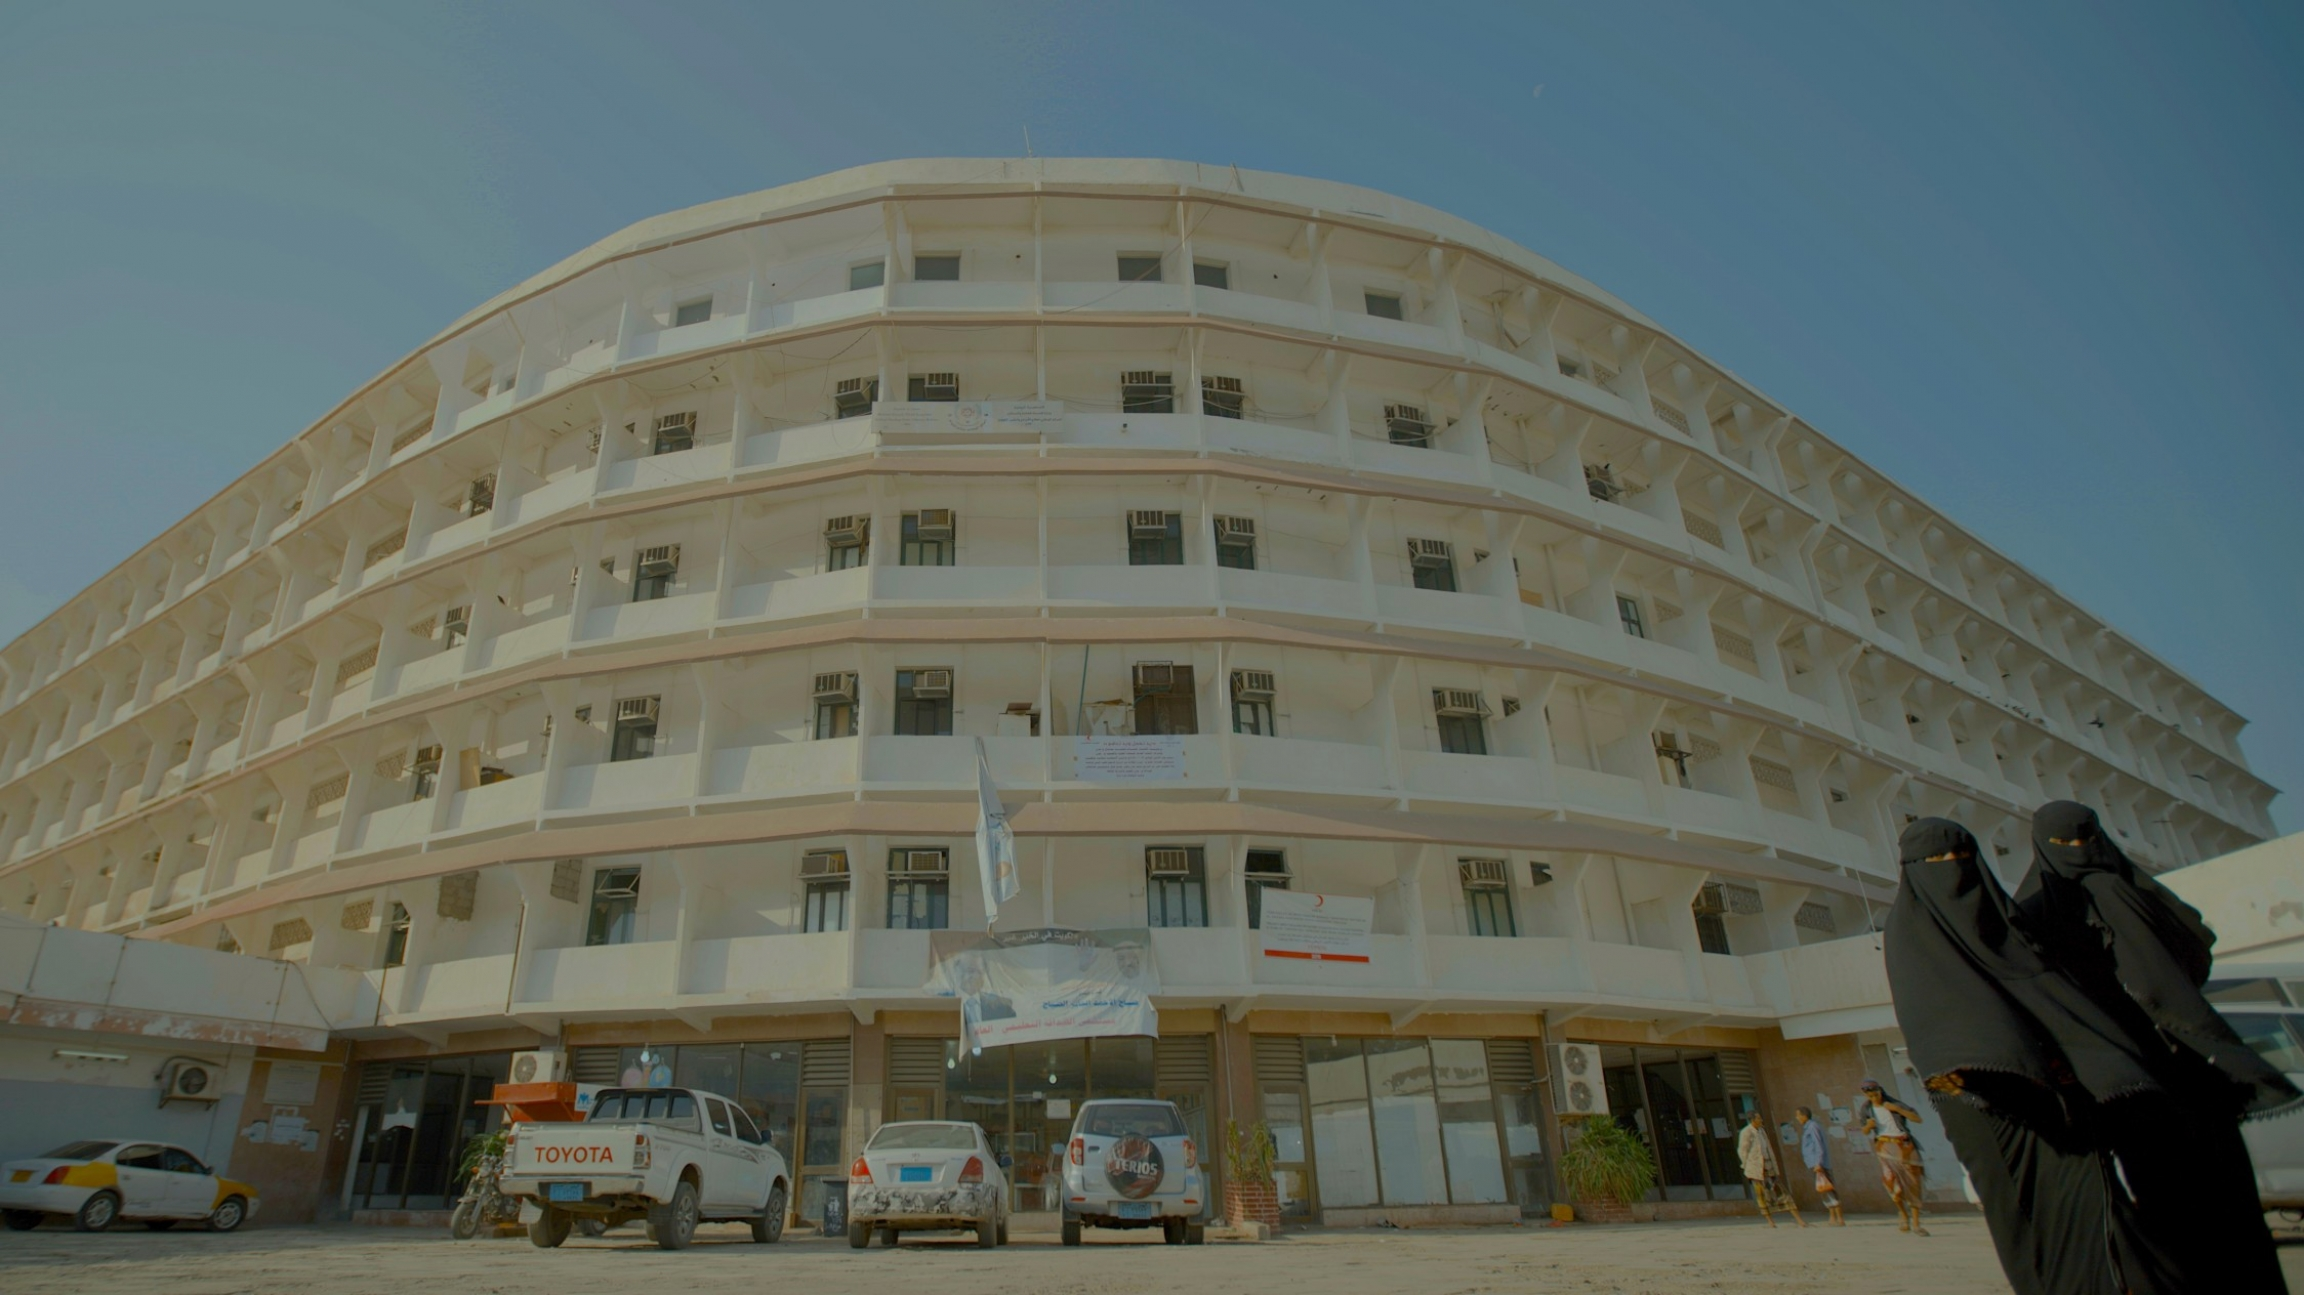 Sadaqa Hospital, as seen from the street